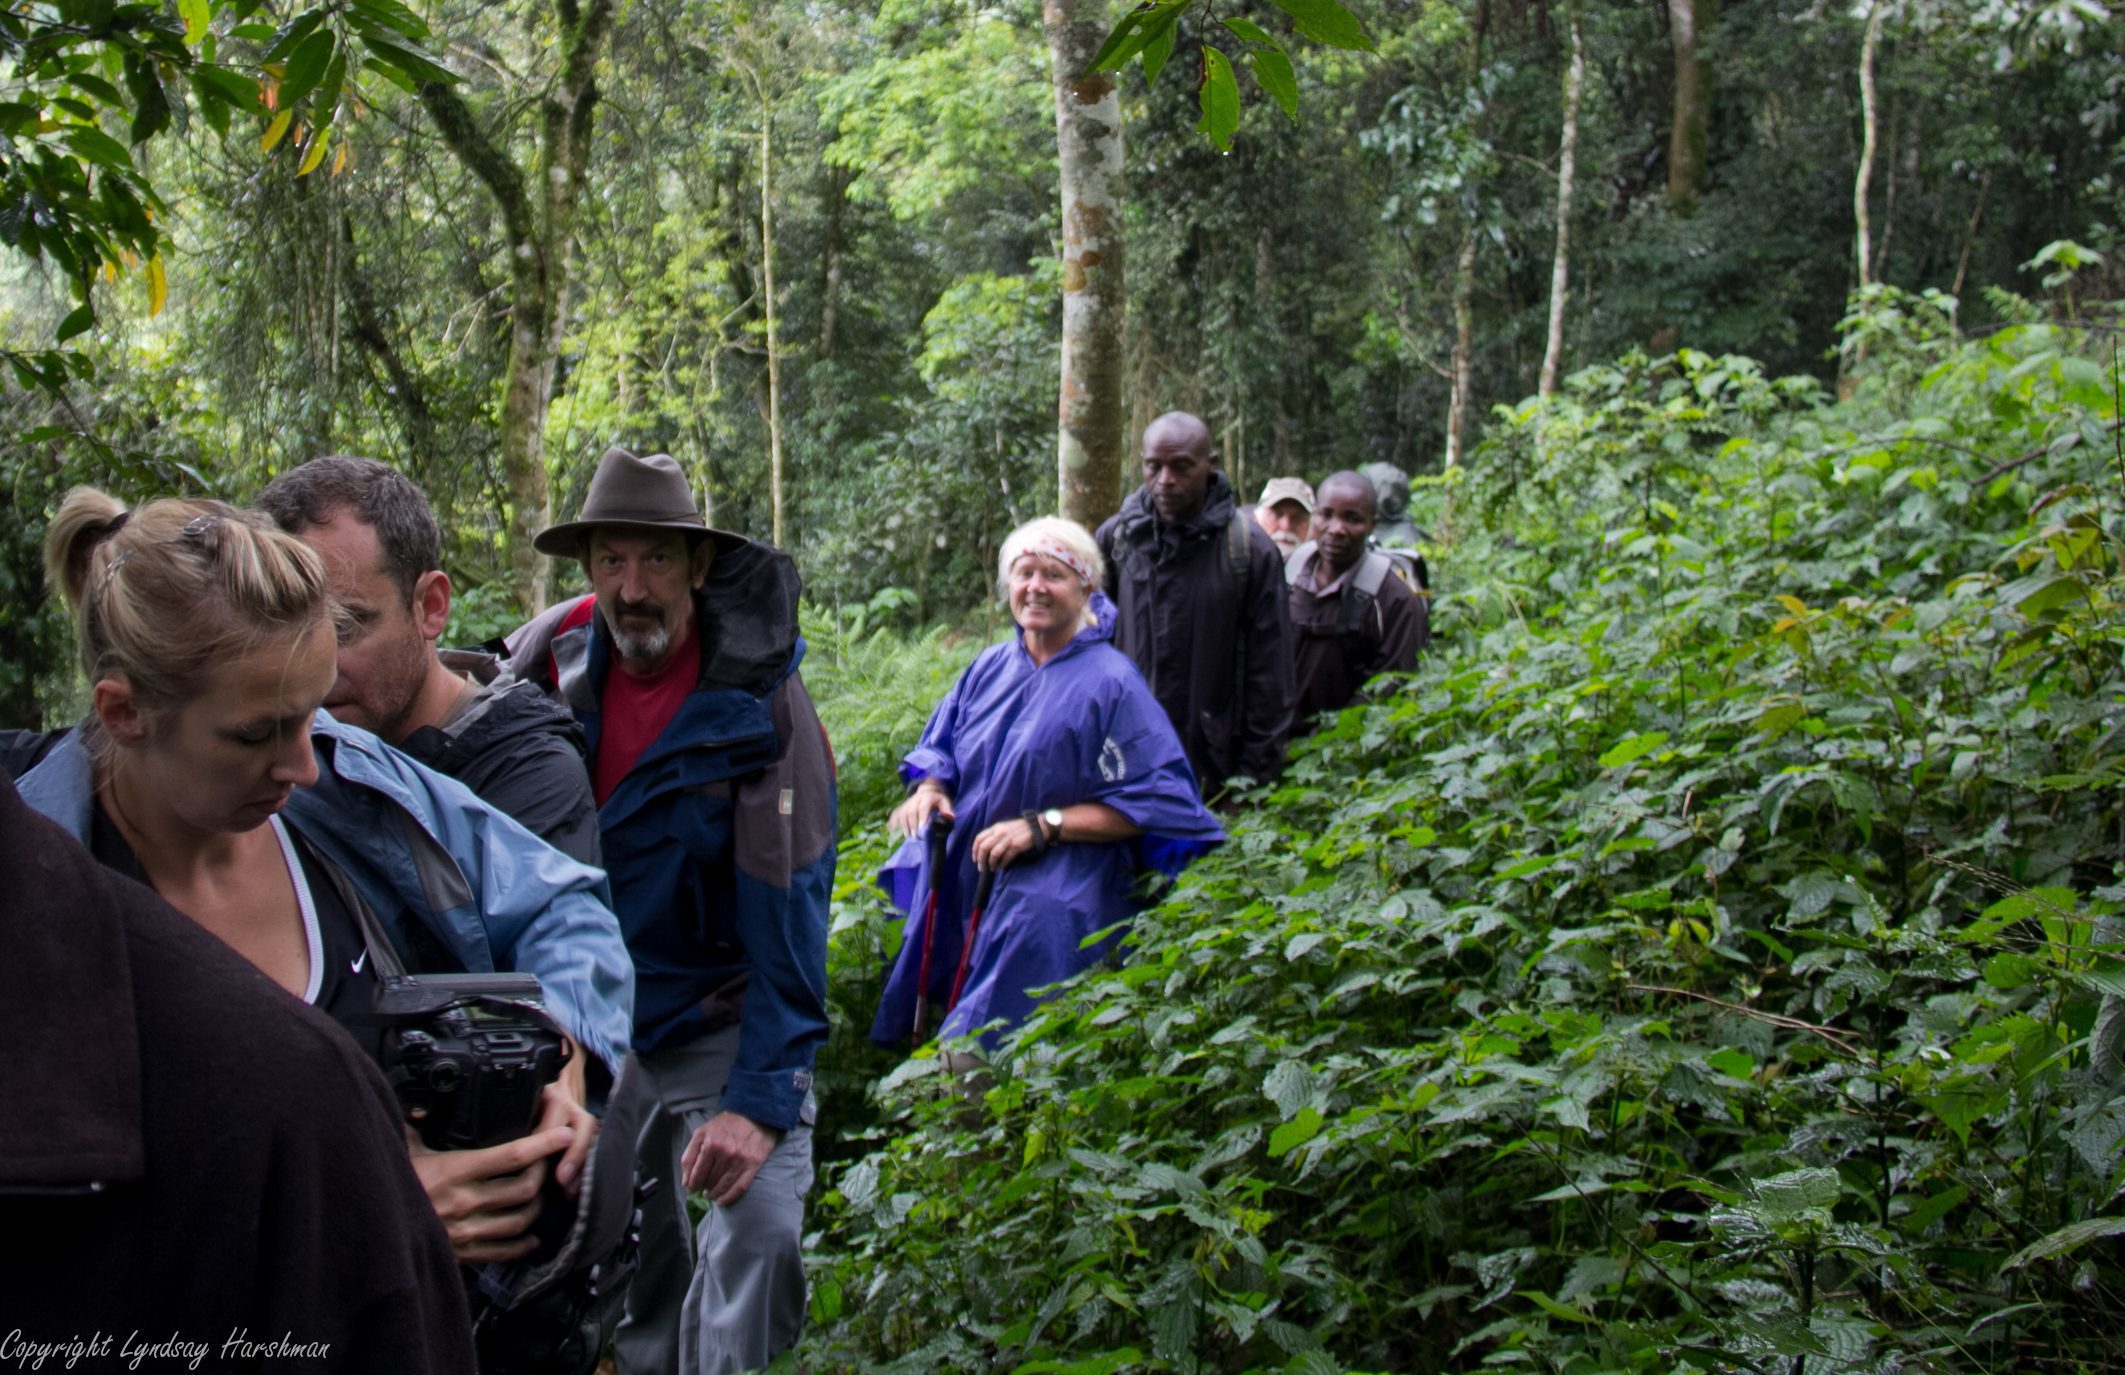 people walking on a trail through the forest in Bwindi.